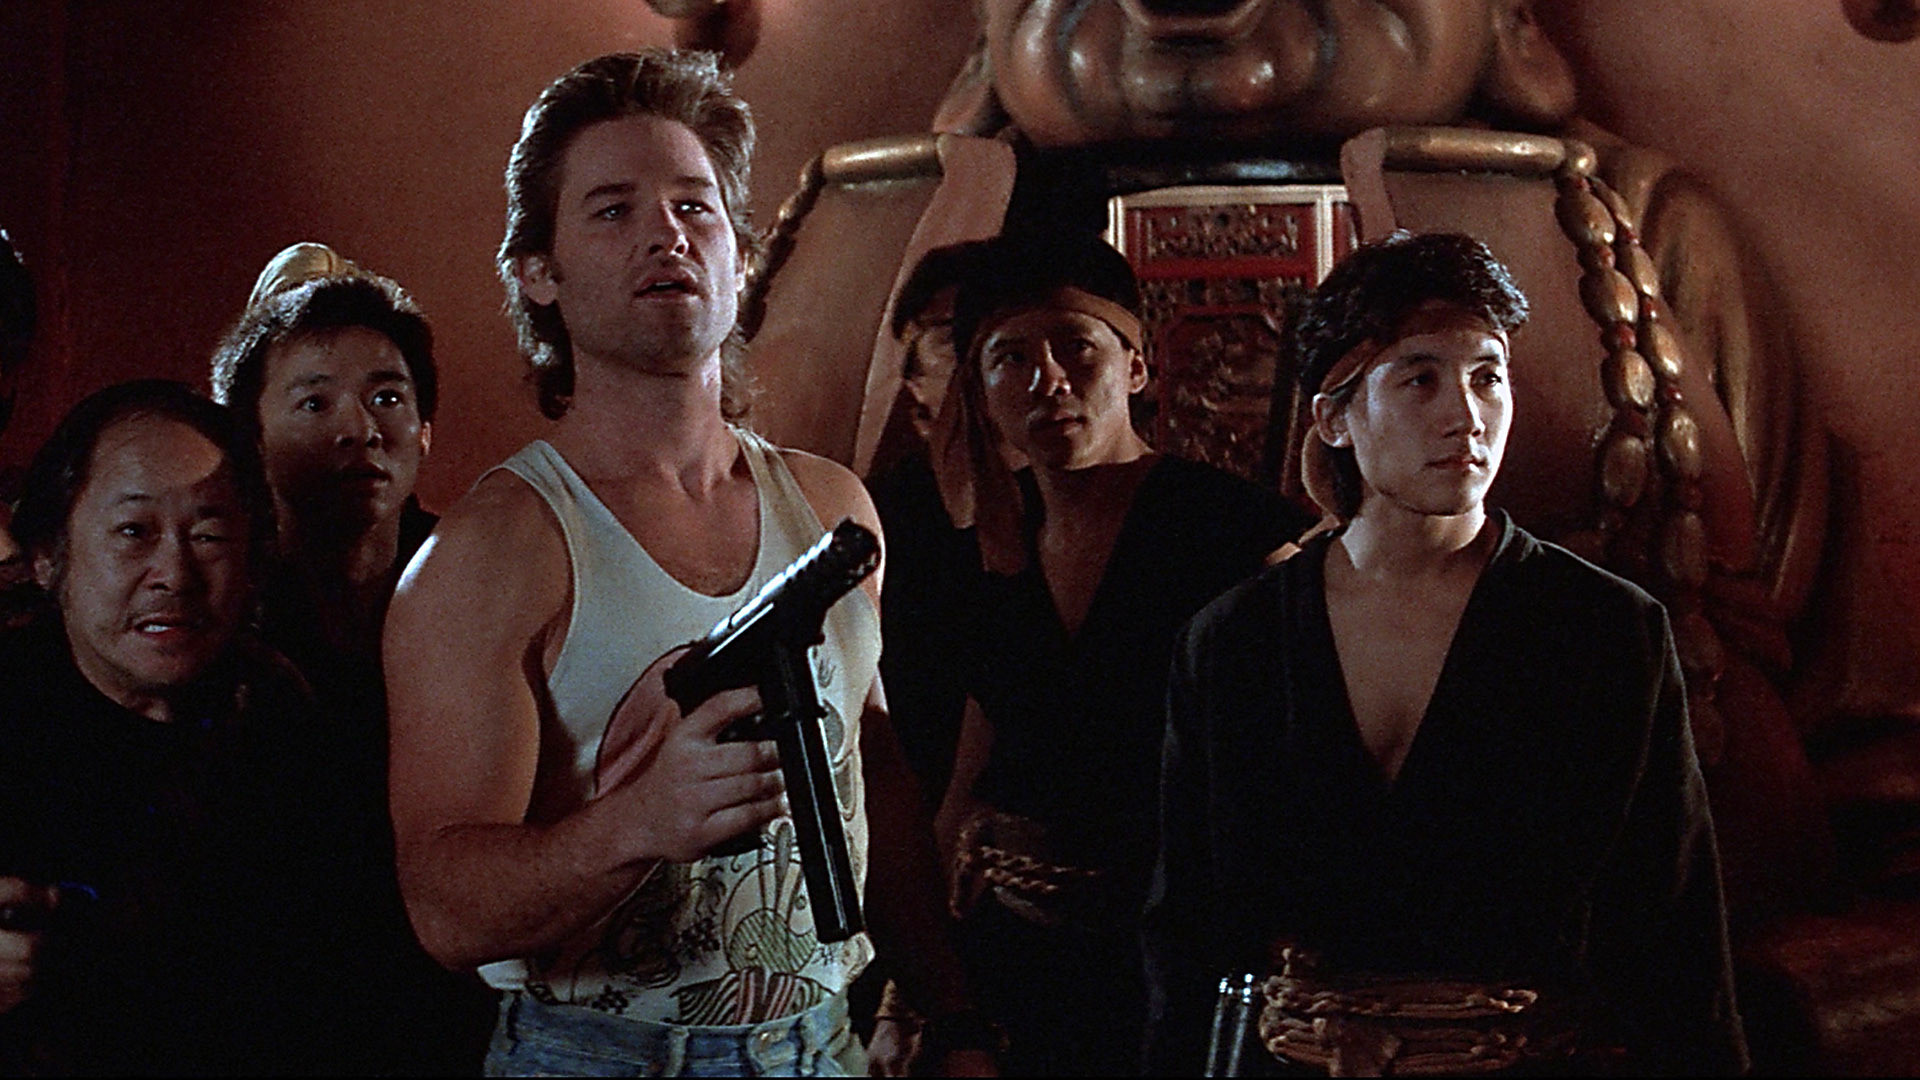 The Rock's Big Trouble In Little China Movie Is A Sequel.